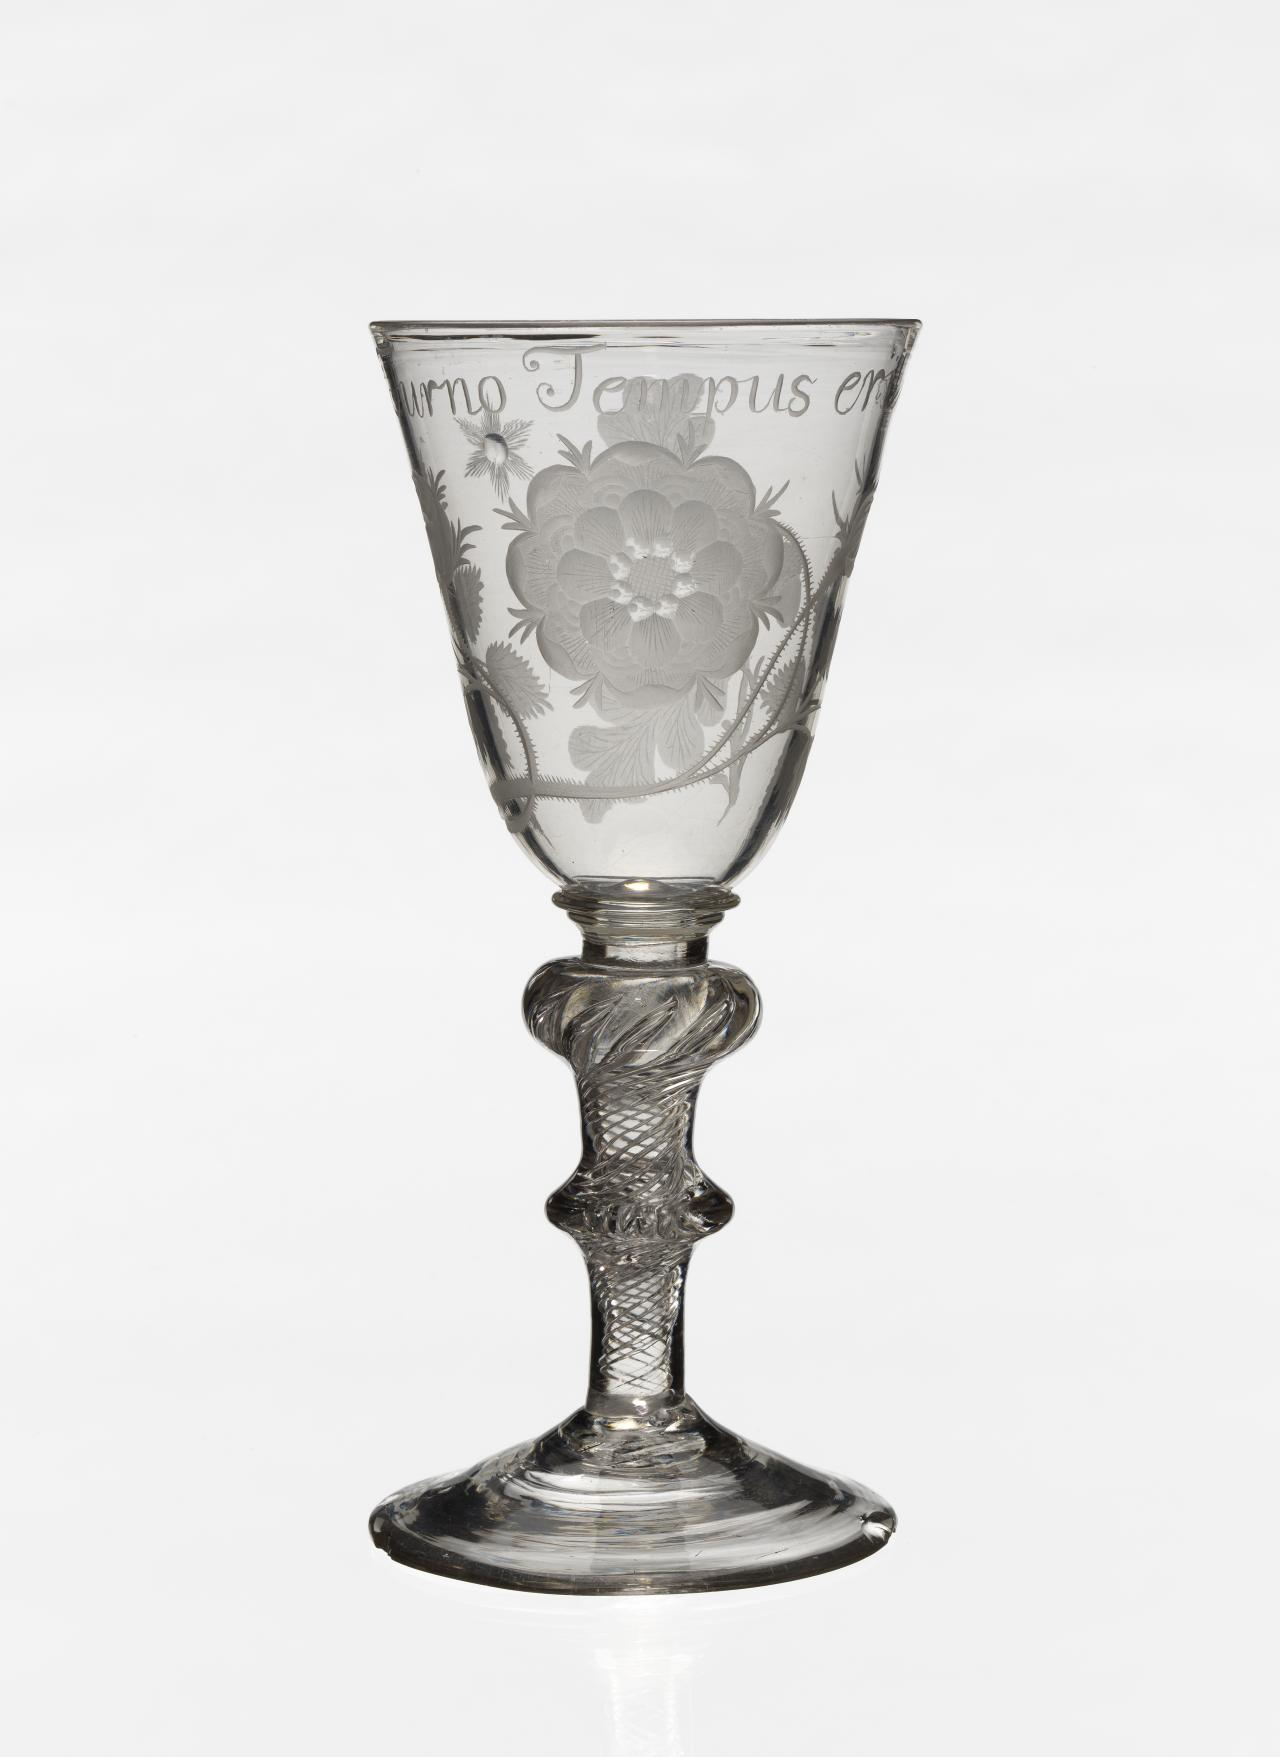 Ceremonial goblet